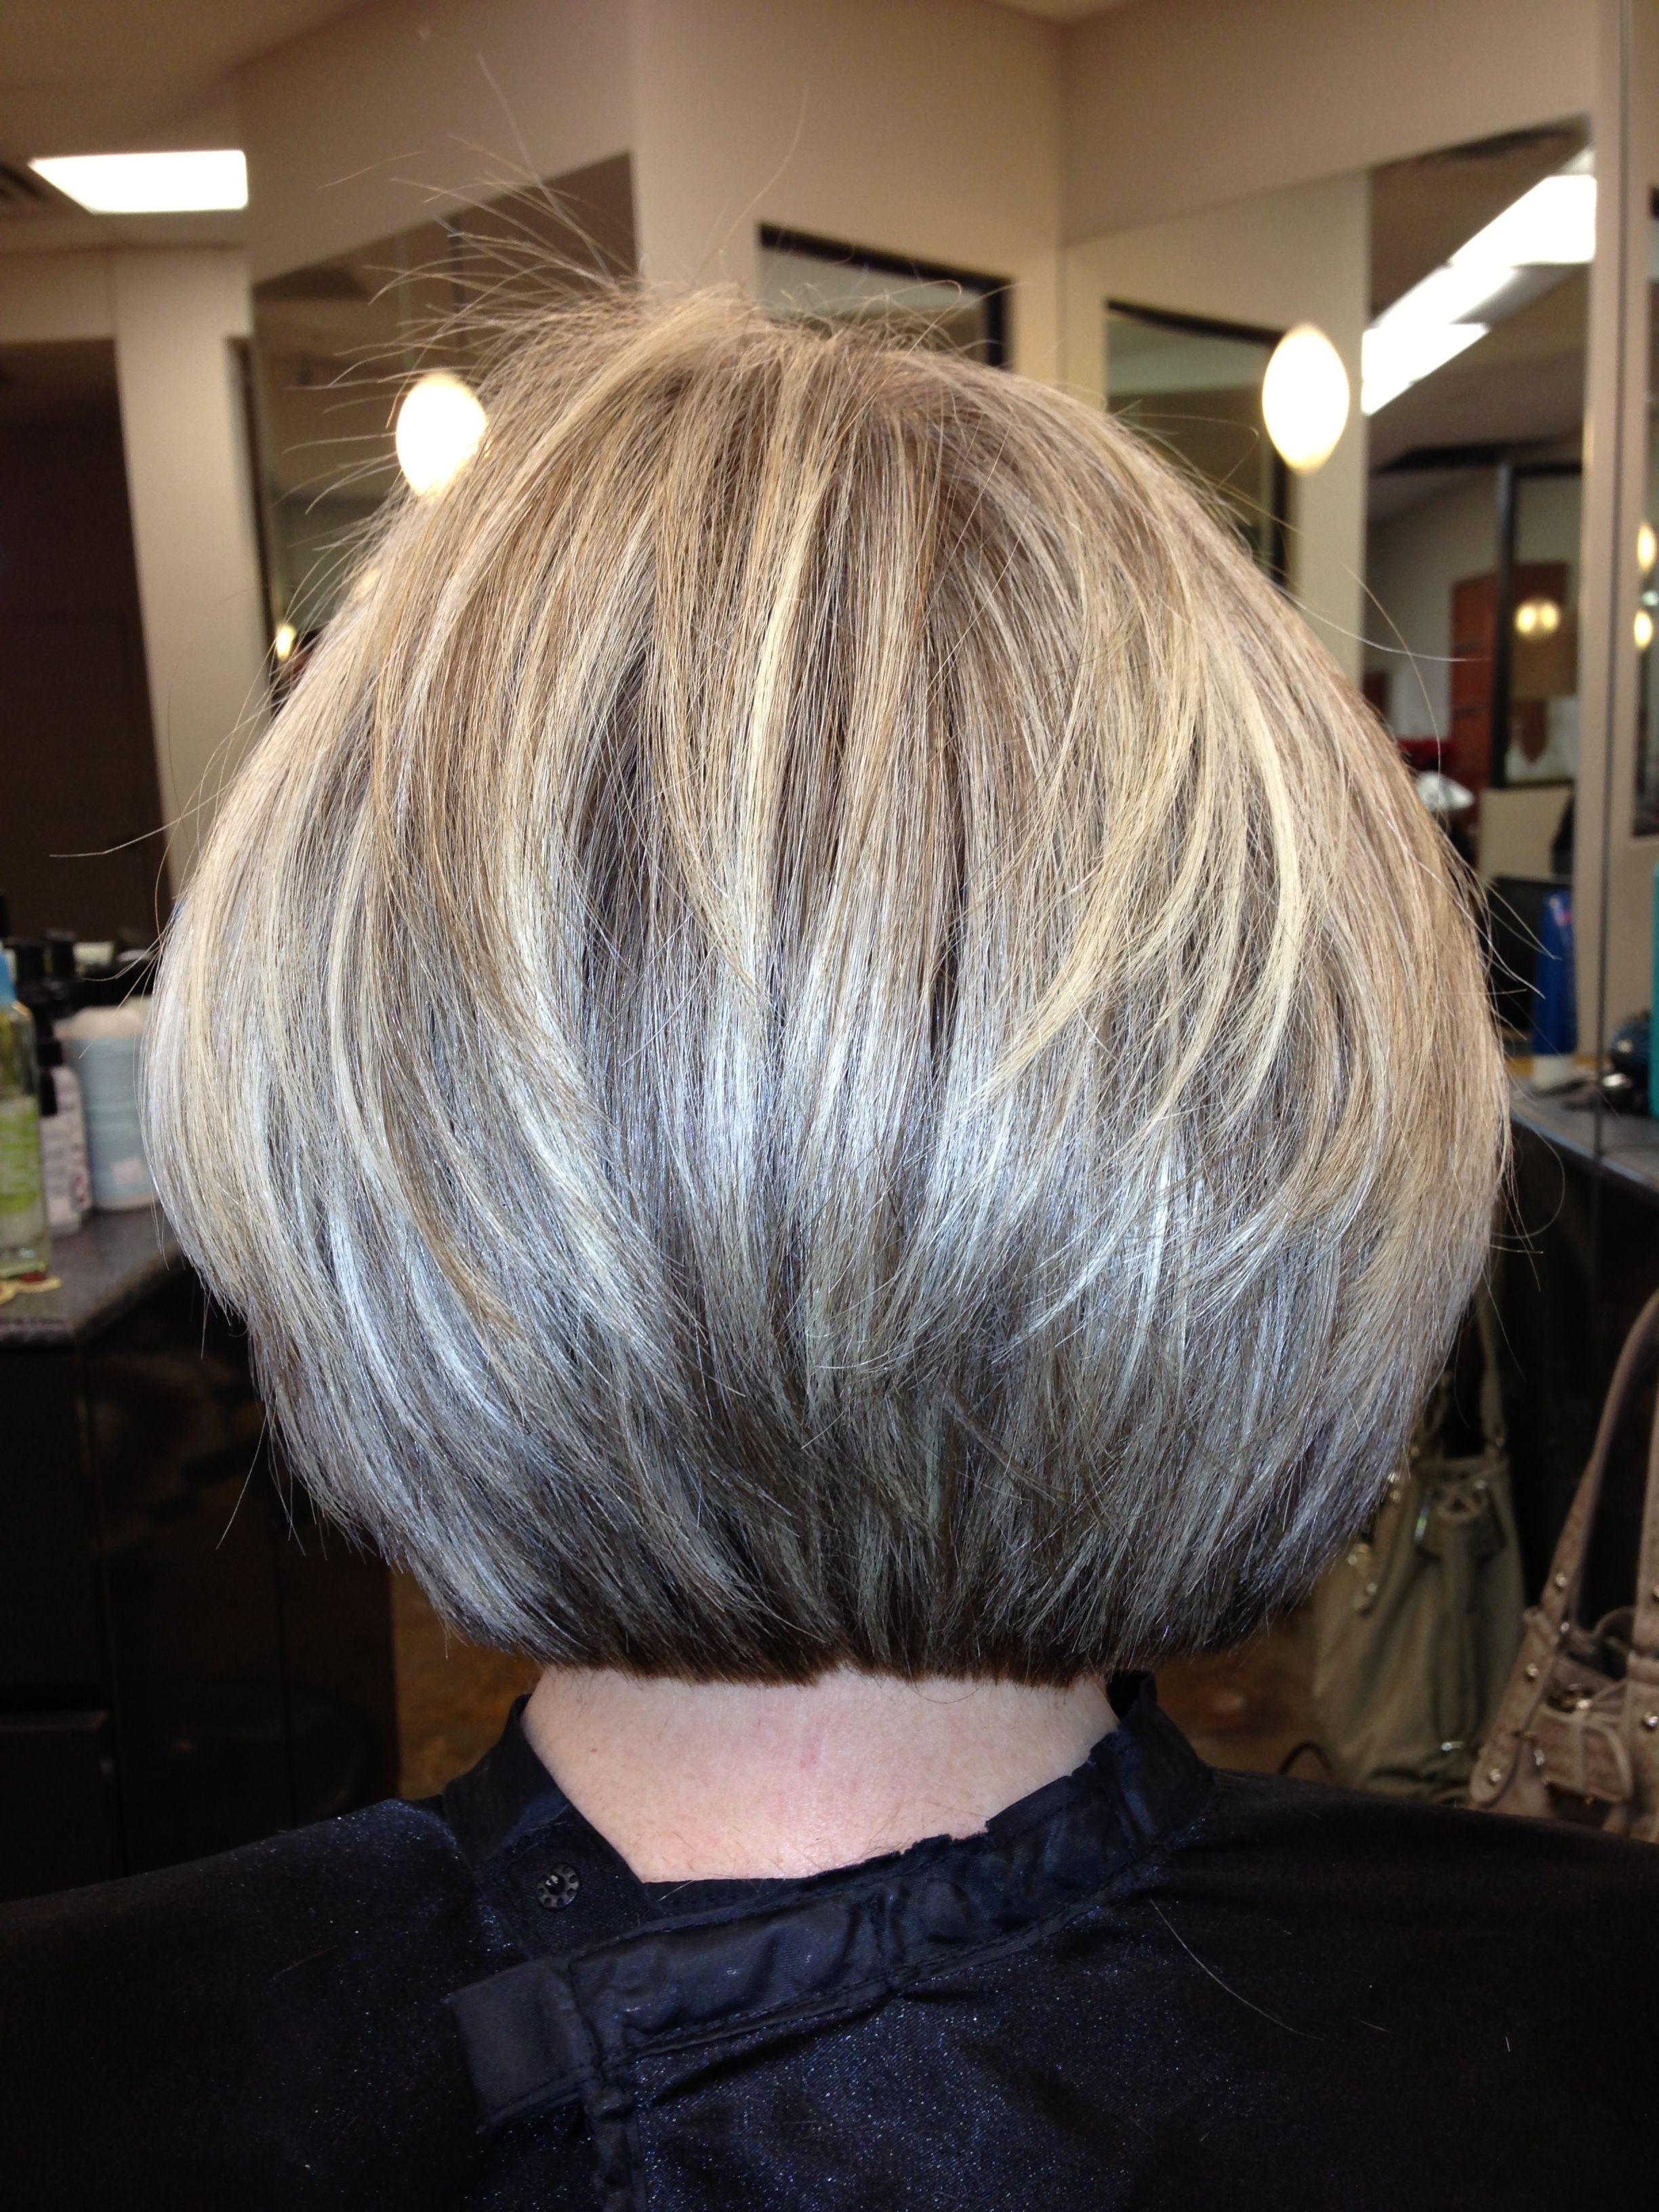 Blunt yet layered texturized cut